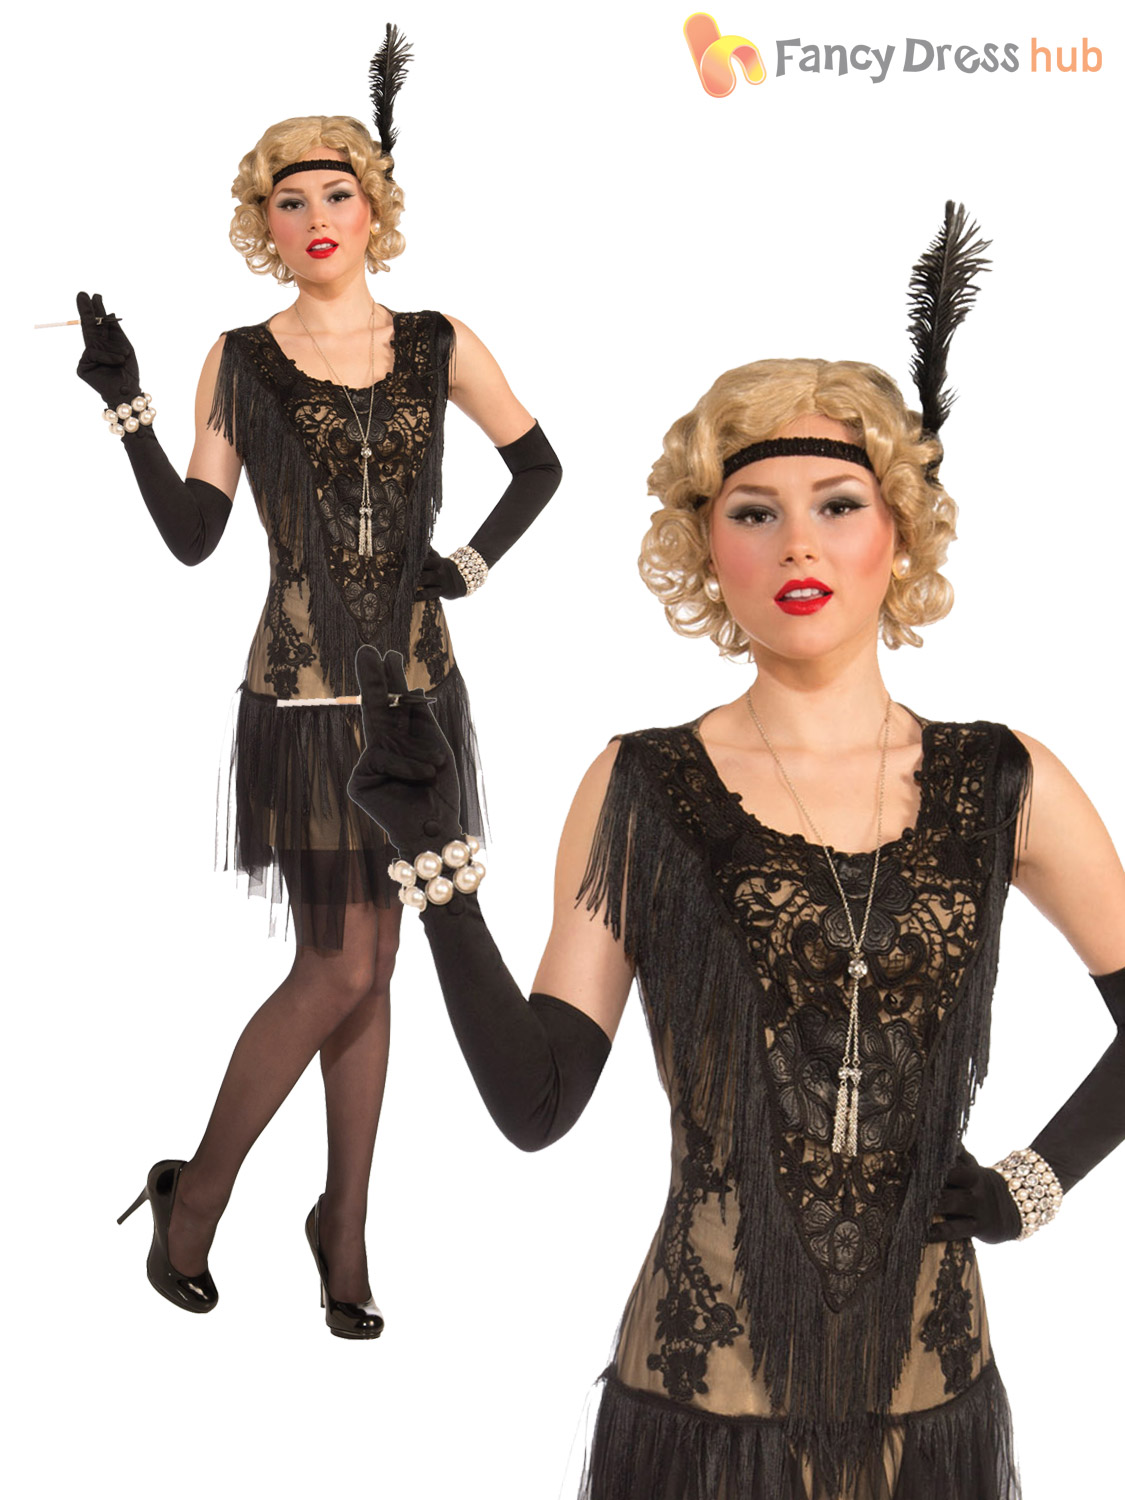 Ladies-Deluxe-Flapper-Costume-Womens-1920s-Great-Gatsby-  sc 1 st  eBay & Ladies Deluxe Flapper Costume Womens 1920s Great Gatsby Fancy Dress ...